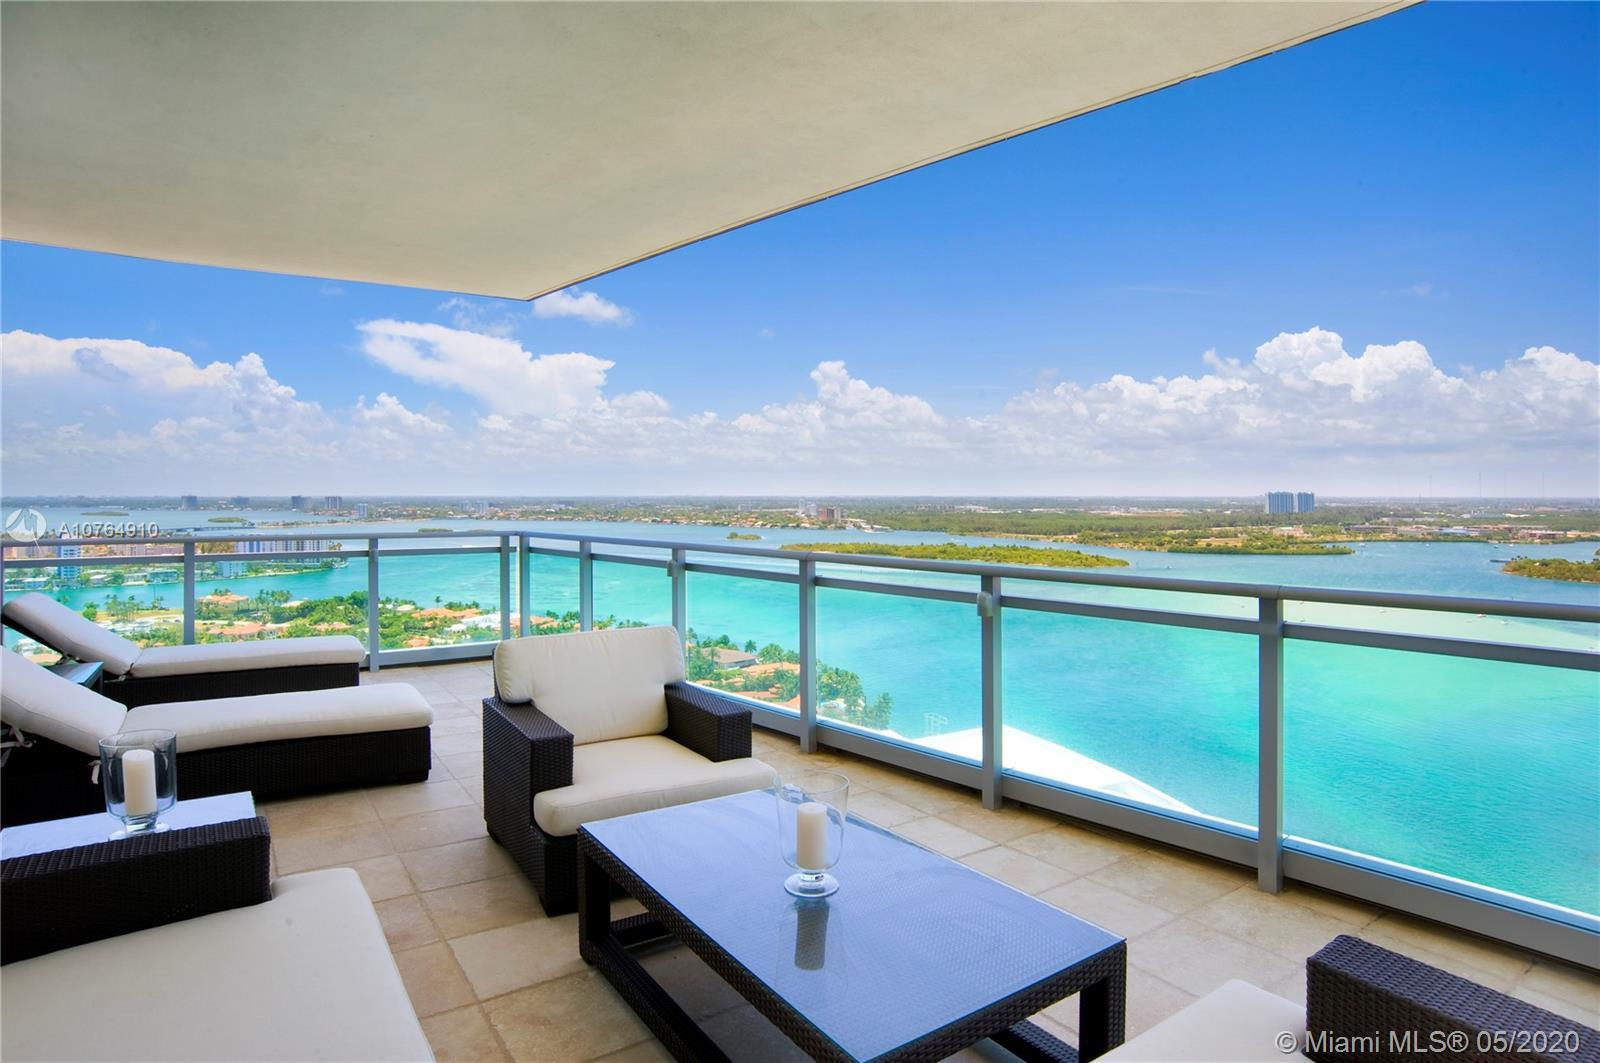 EXCEPTIONAL TOWER SUITE CORNER RESIDENCE WITH BREATHTAKING UNOBSTRUCTED VIEWS OF THE OCEAN, INTRACOA